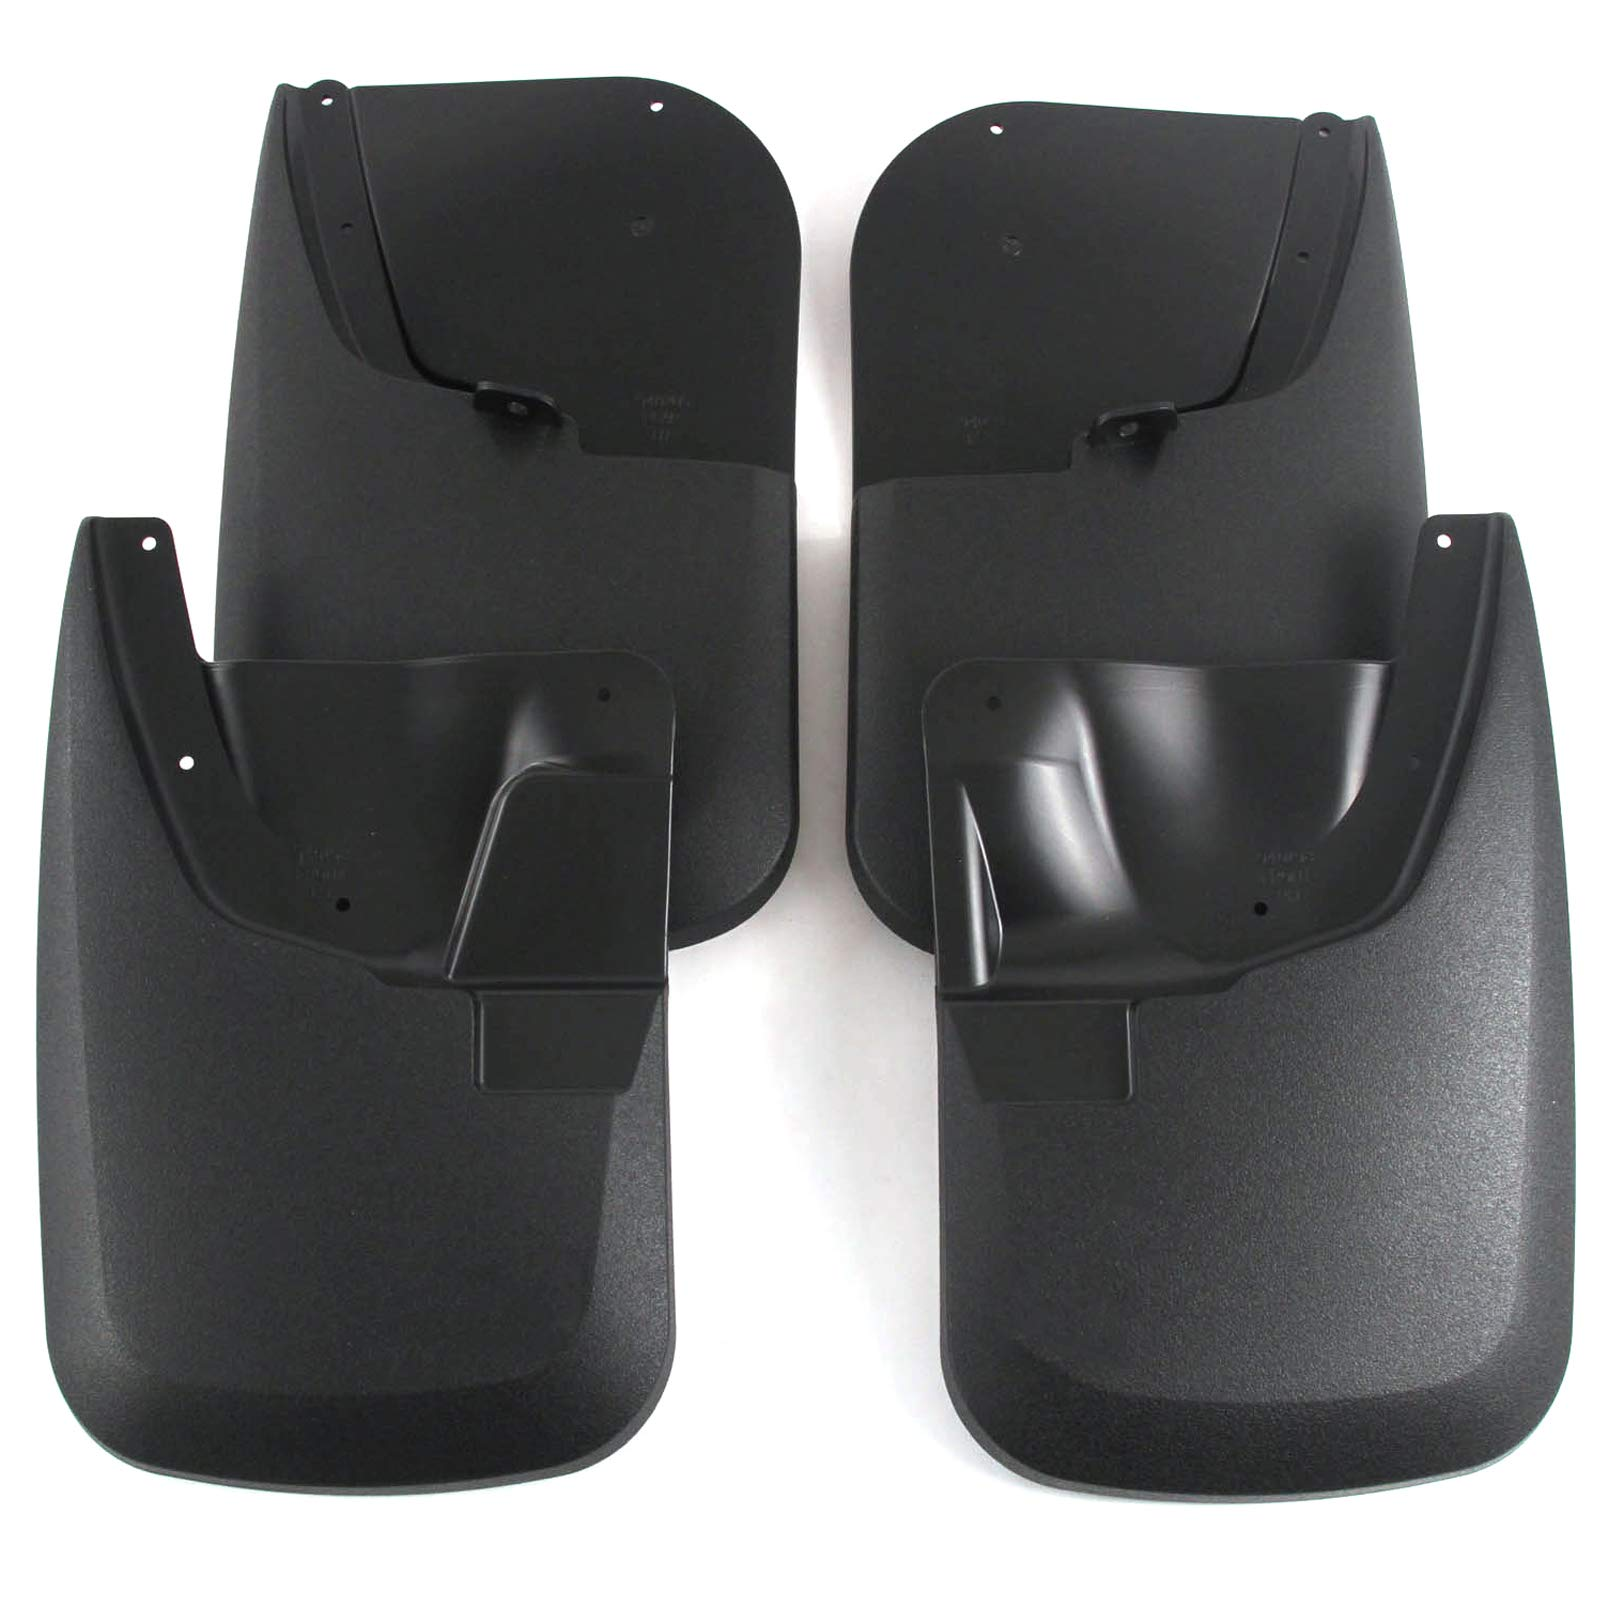 Red Hound Auto Heavy Duty Molded Mud Flaps Compatible with 2011-2016 Ford Super Duty F250/F350 Mud Guards Splash Front & Rear 4pc Set (for Trucks Without Fender Flares)